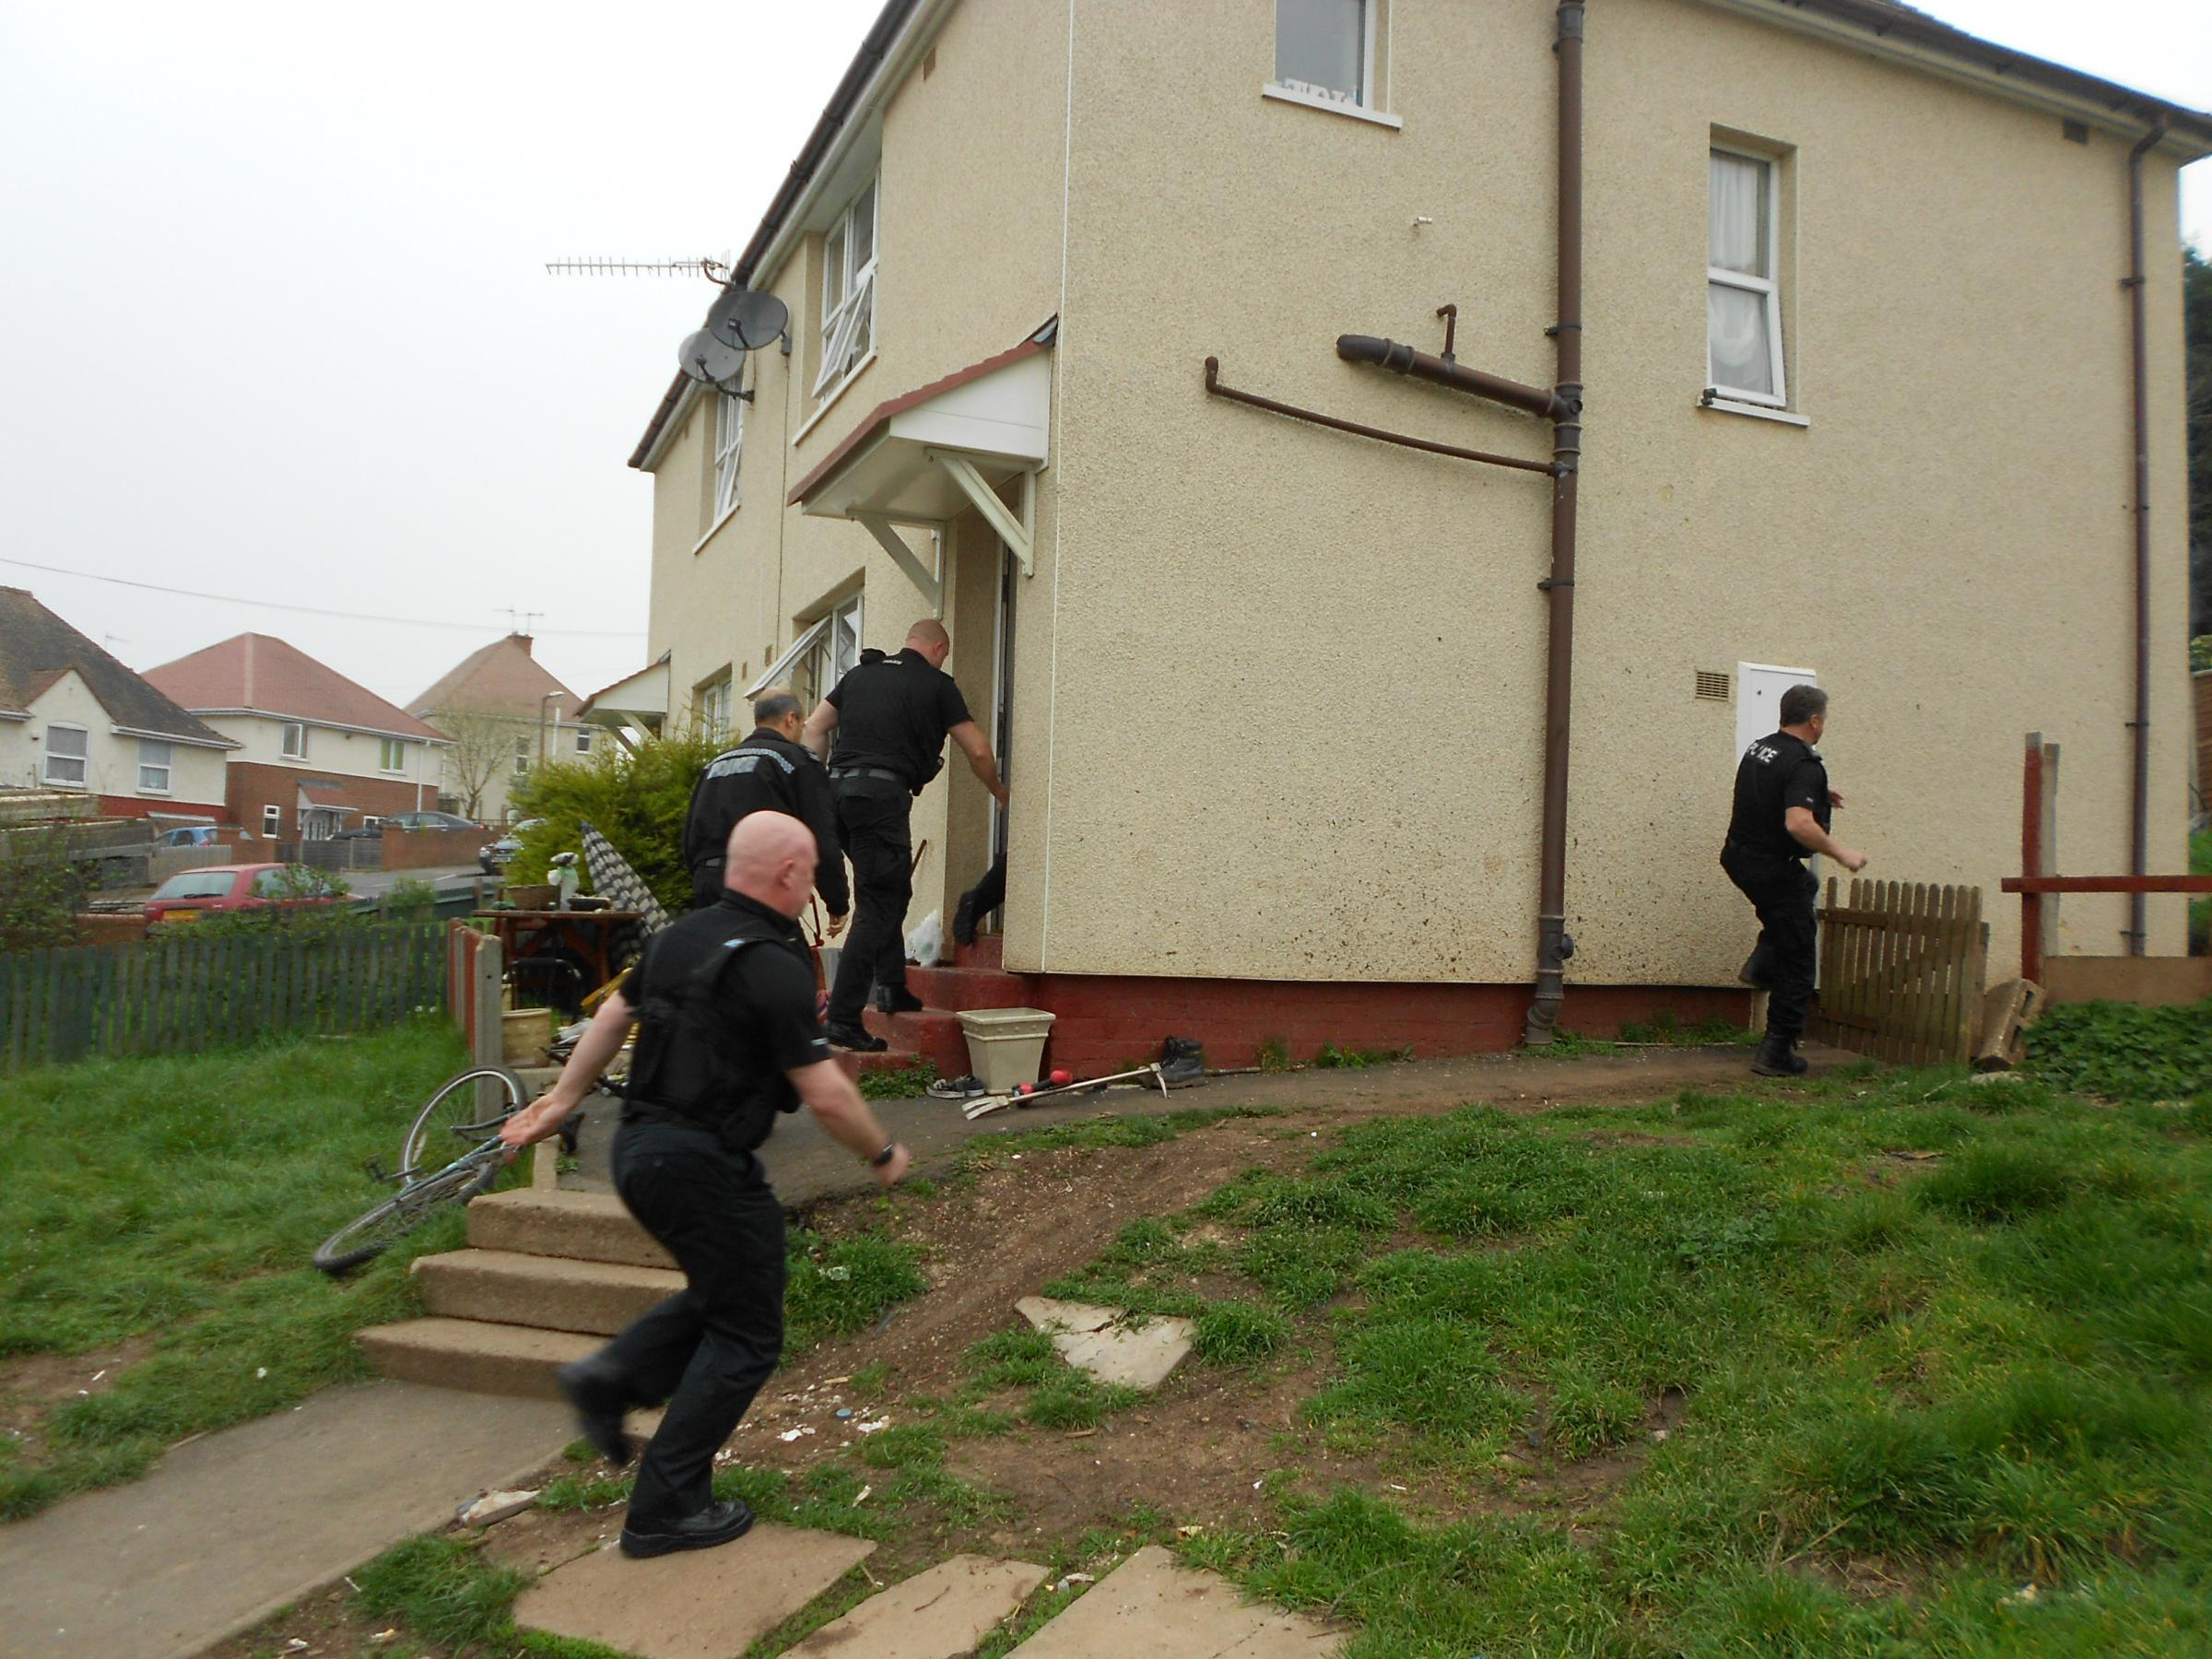 Drugs raids - police storm two houses in Tolladine, Worcester: PICTURES